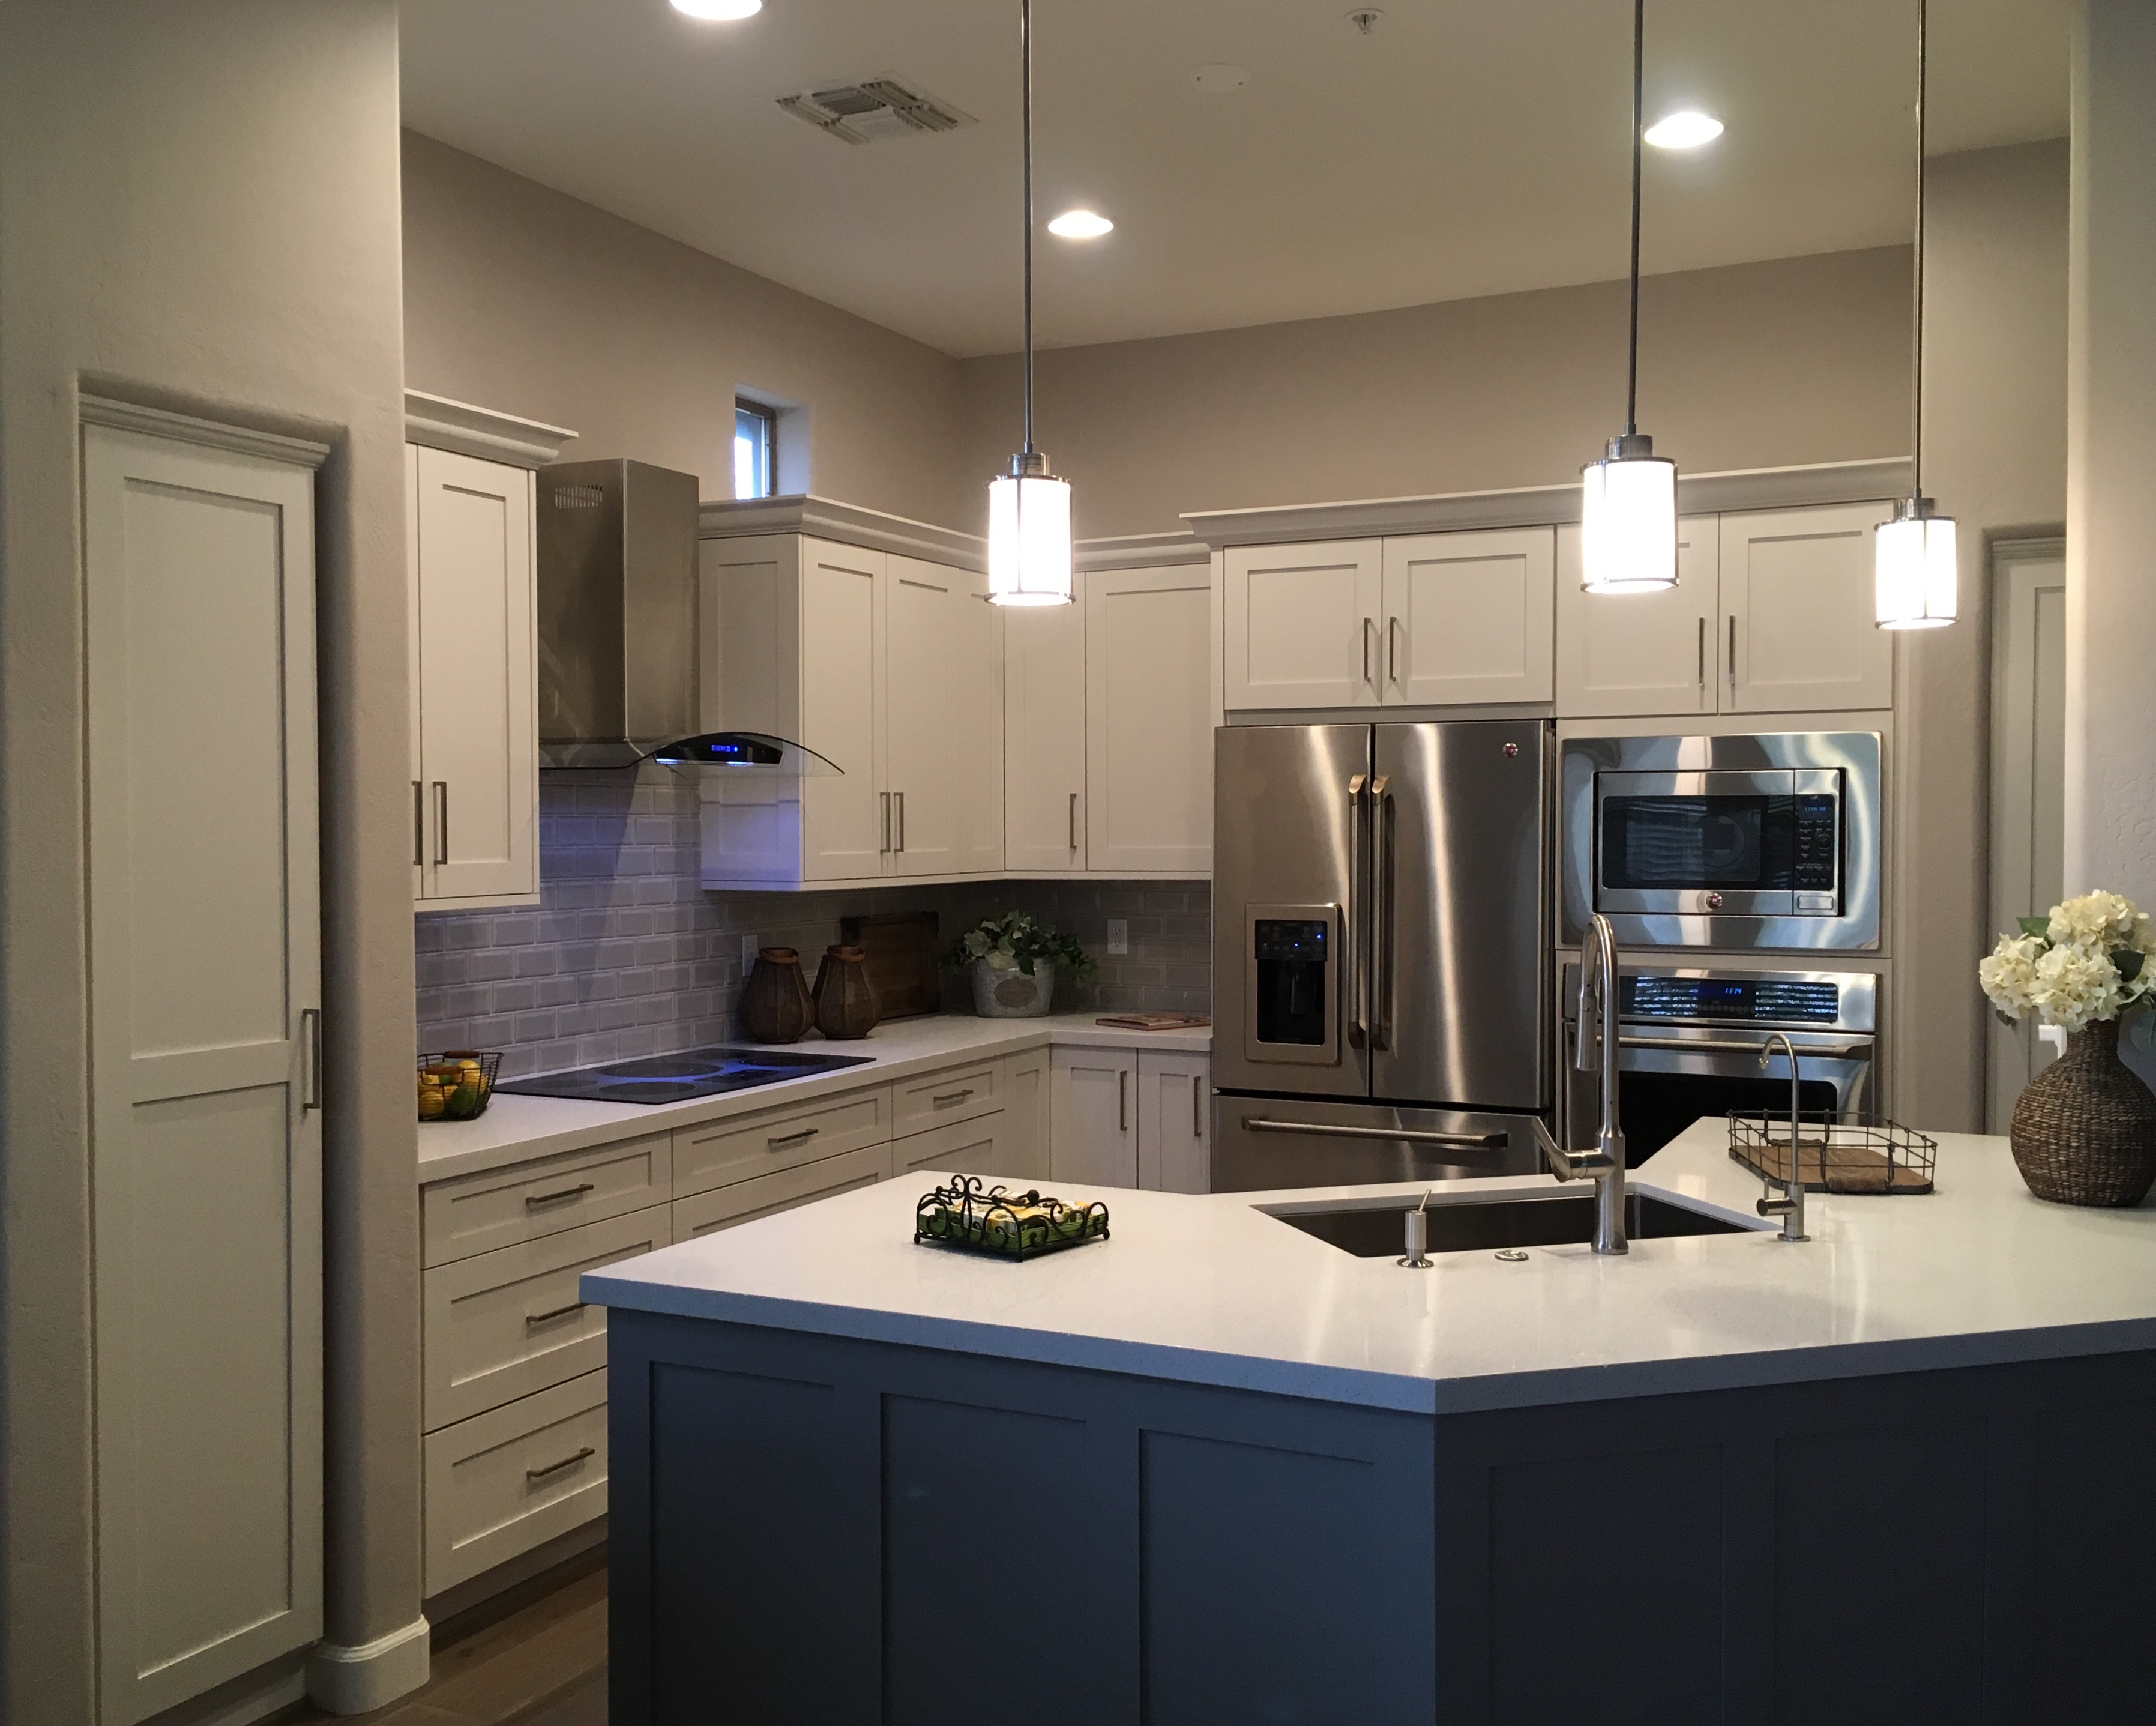 Our Projects & Fallone Kitchen u0026 Bath u2013 Best Kitchen and Bath Remodelers in Scottsdale